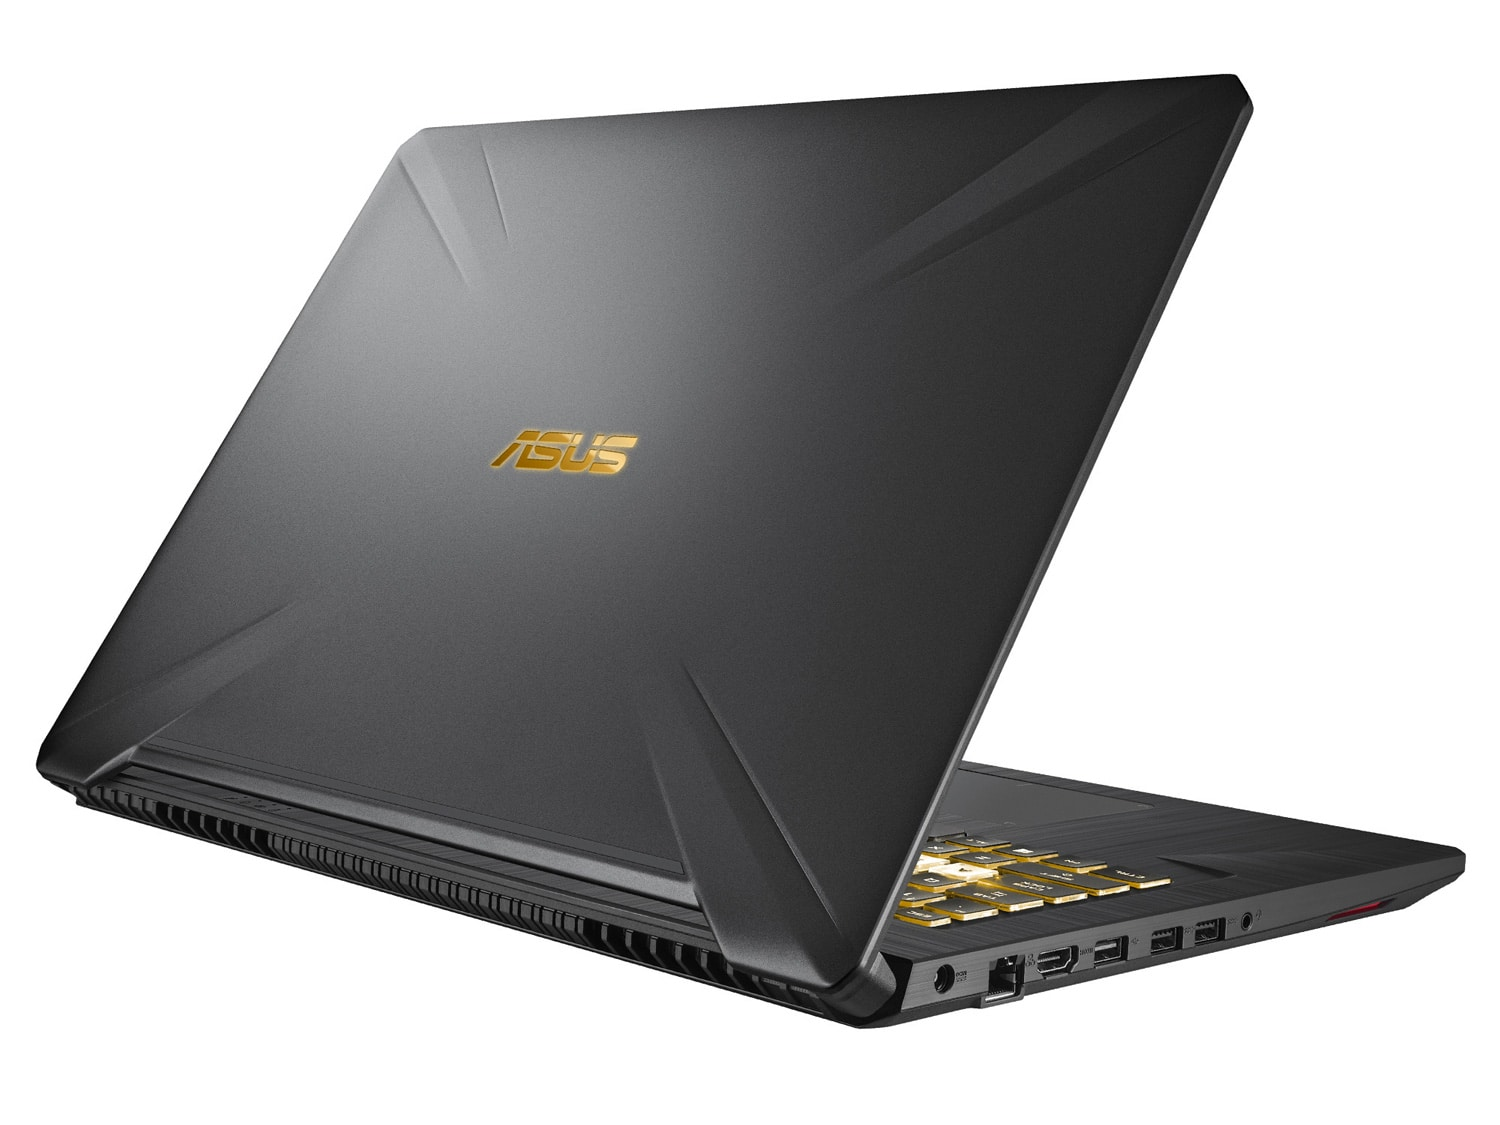 "Asus TUF705DT-AU053T, PC 17"" gamer GTX 1650 (990€)"